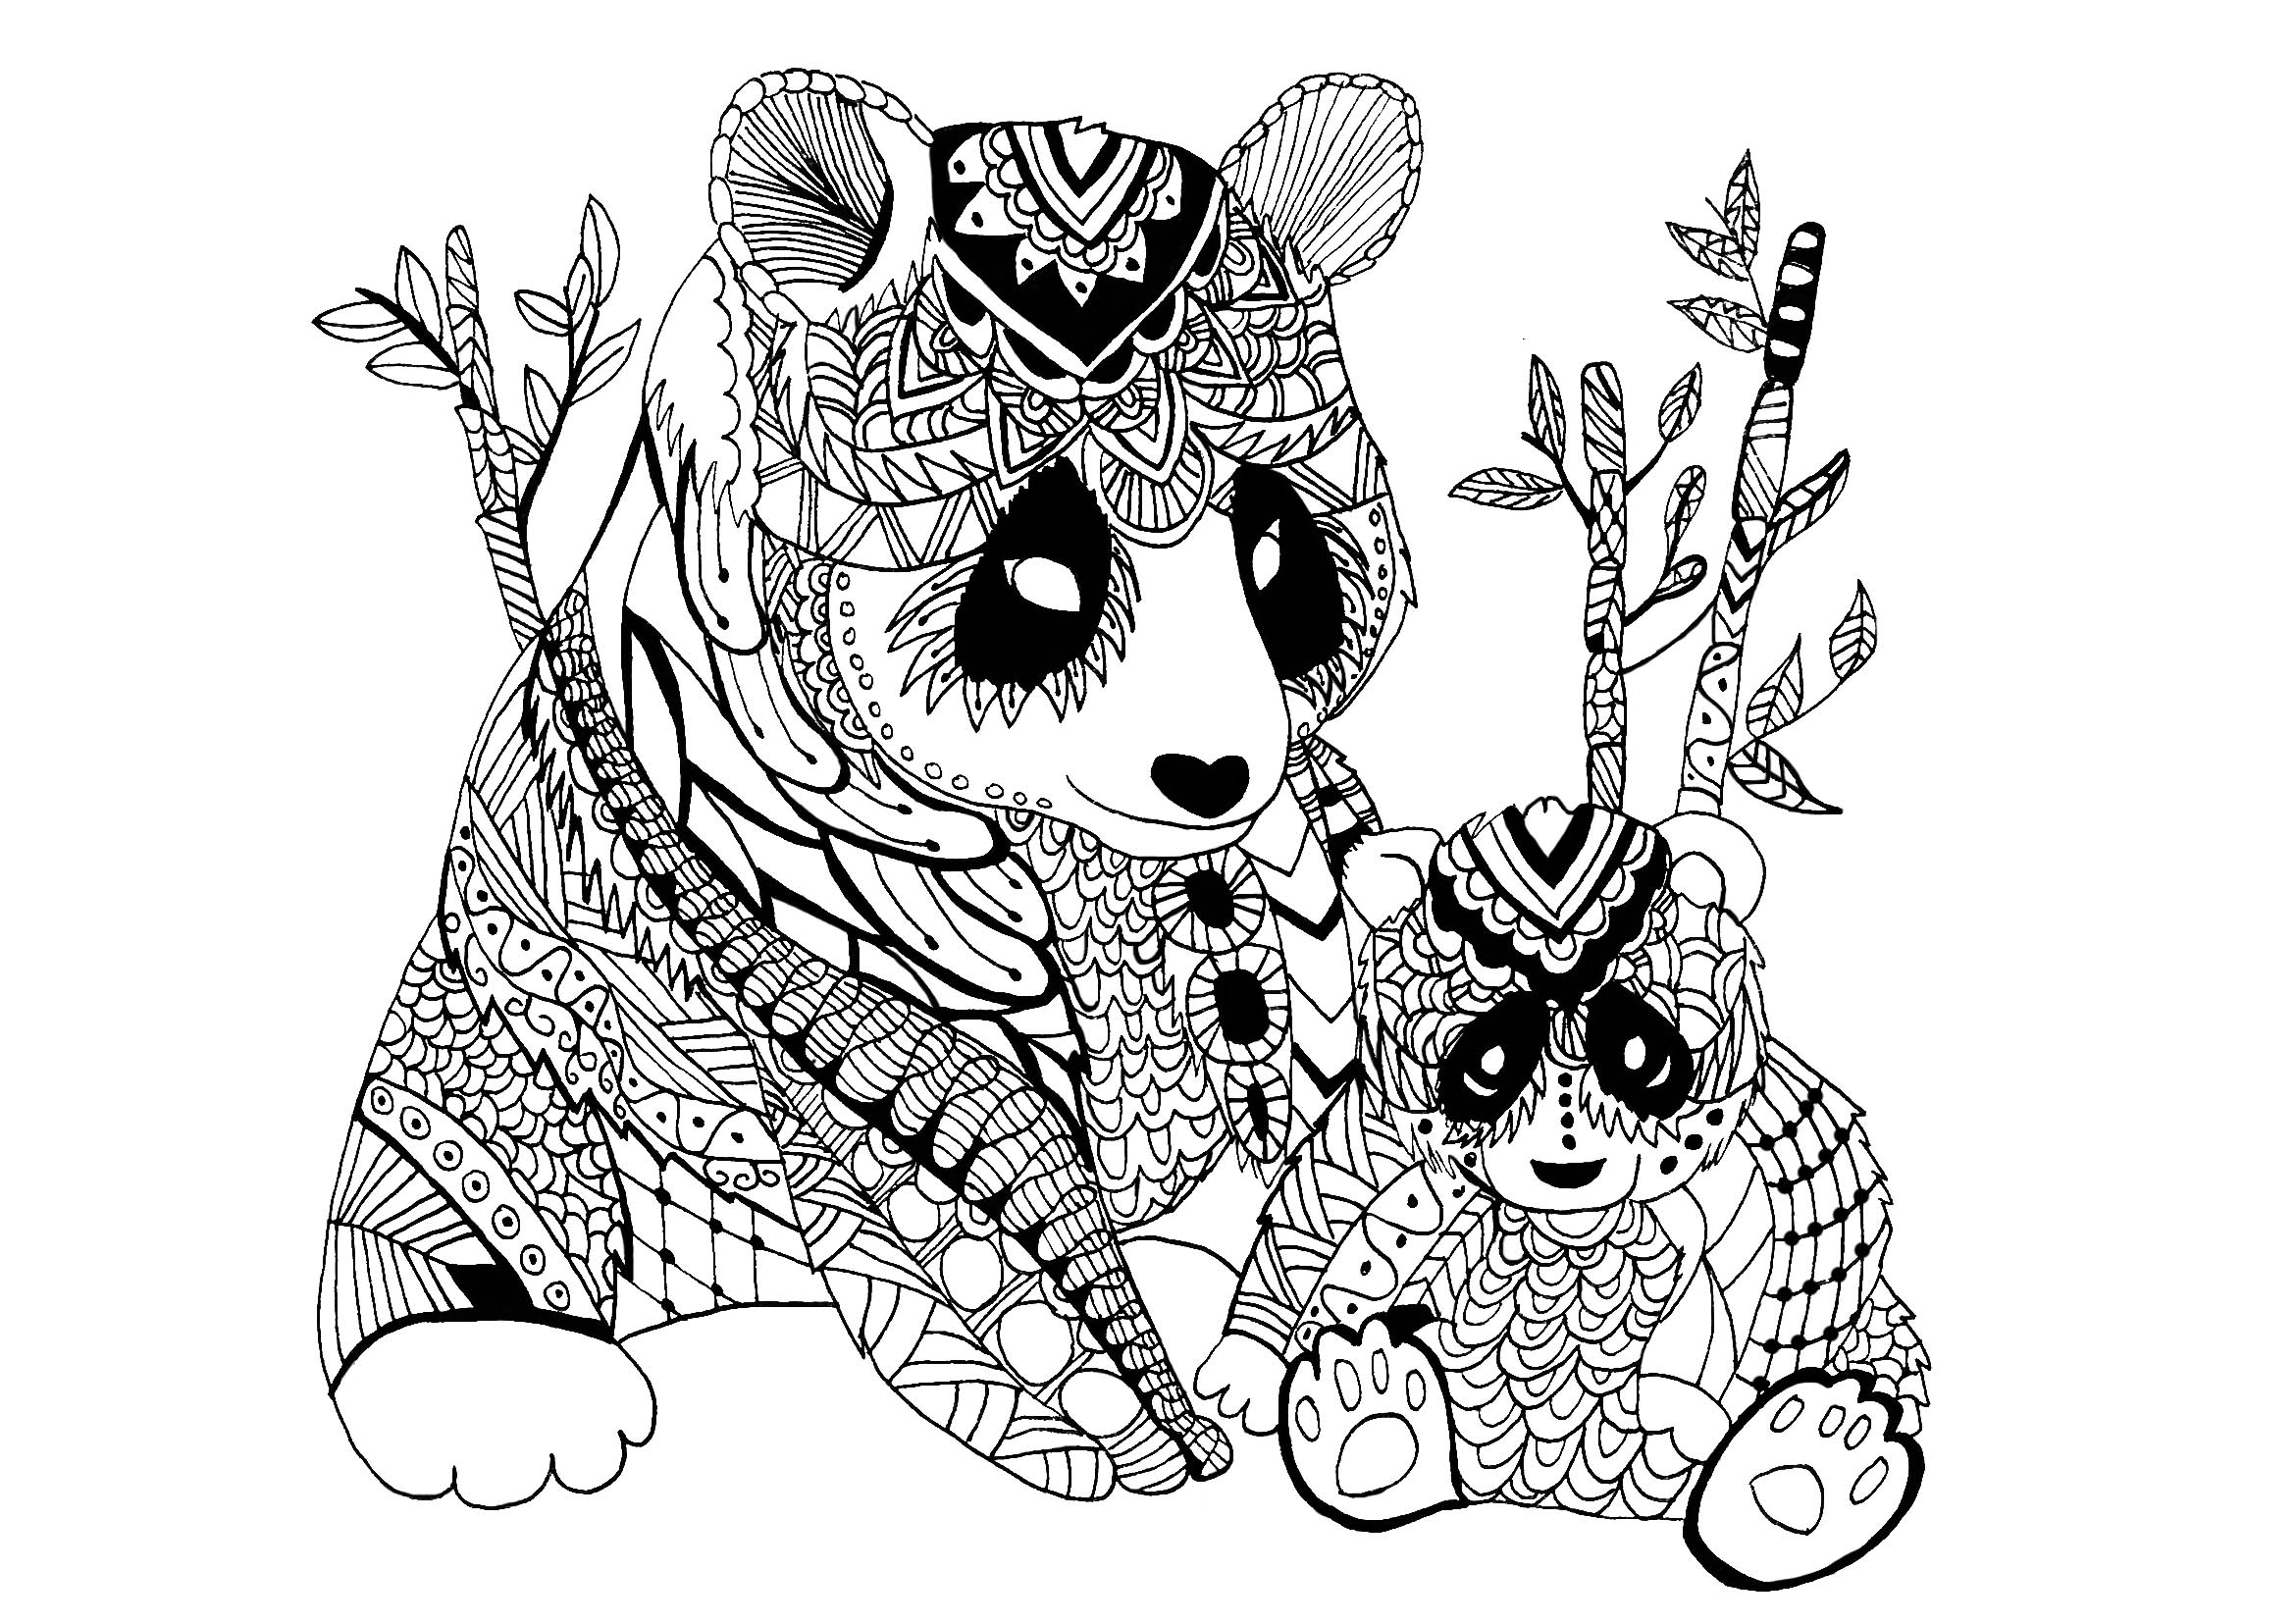 zentangle coloring pages free printable zentangle to print for free zentangle kids coloring pages free coloring printable pages zentangle